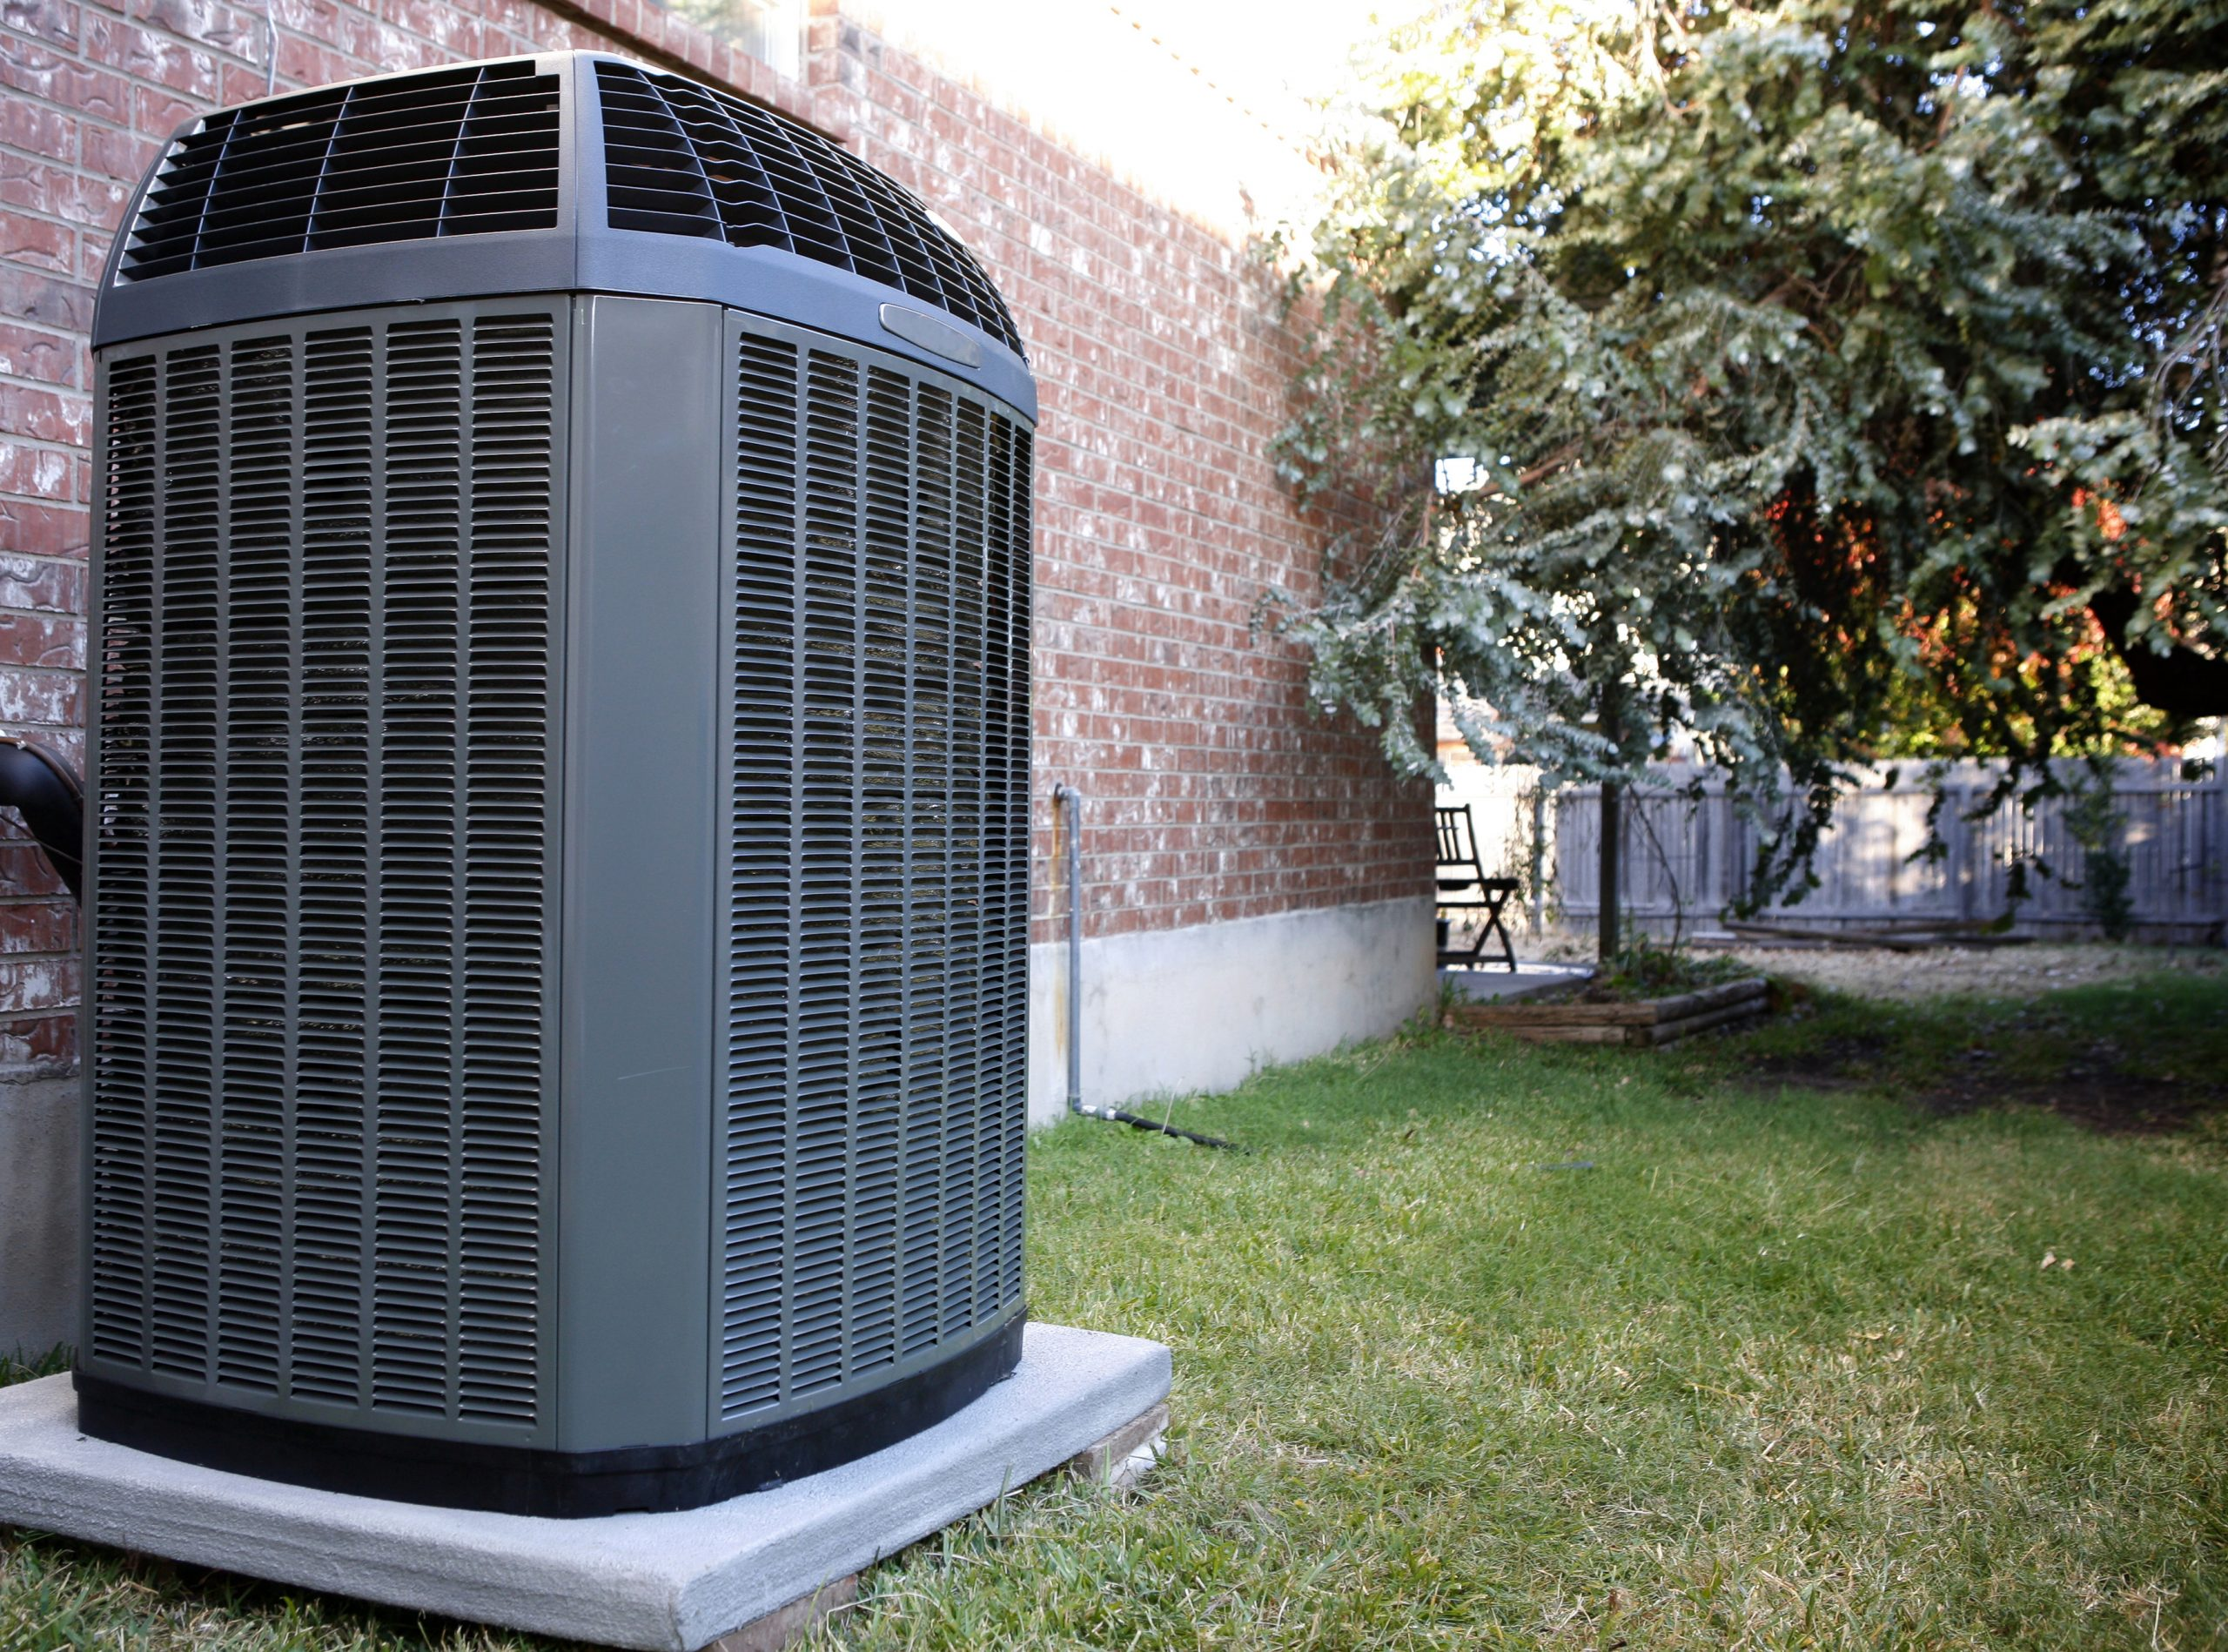 4 Headaches You Can Avoid Simply by Selecting the Right Commercial HVAC Contractor